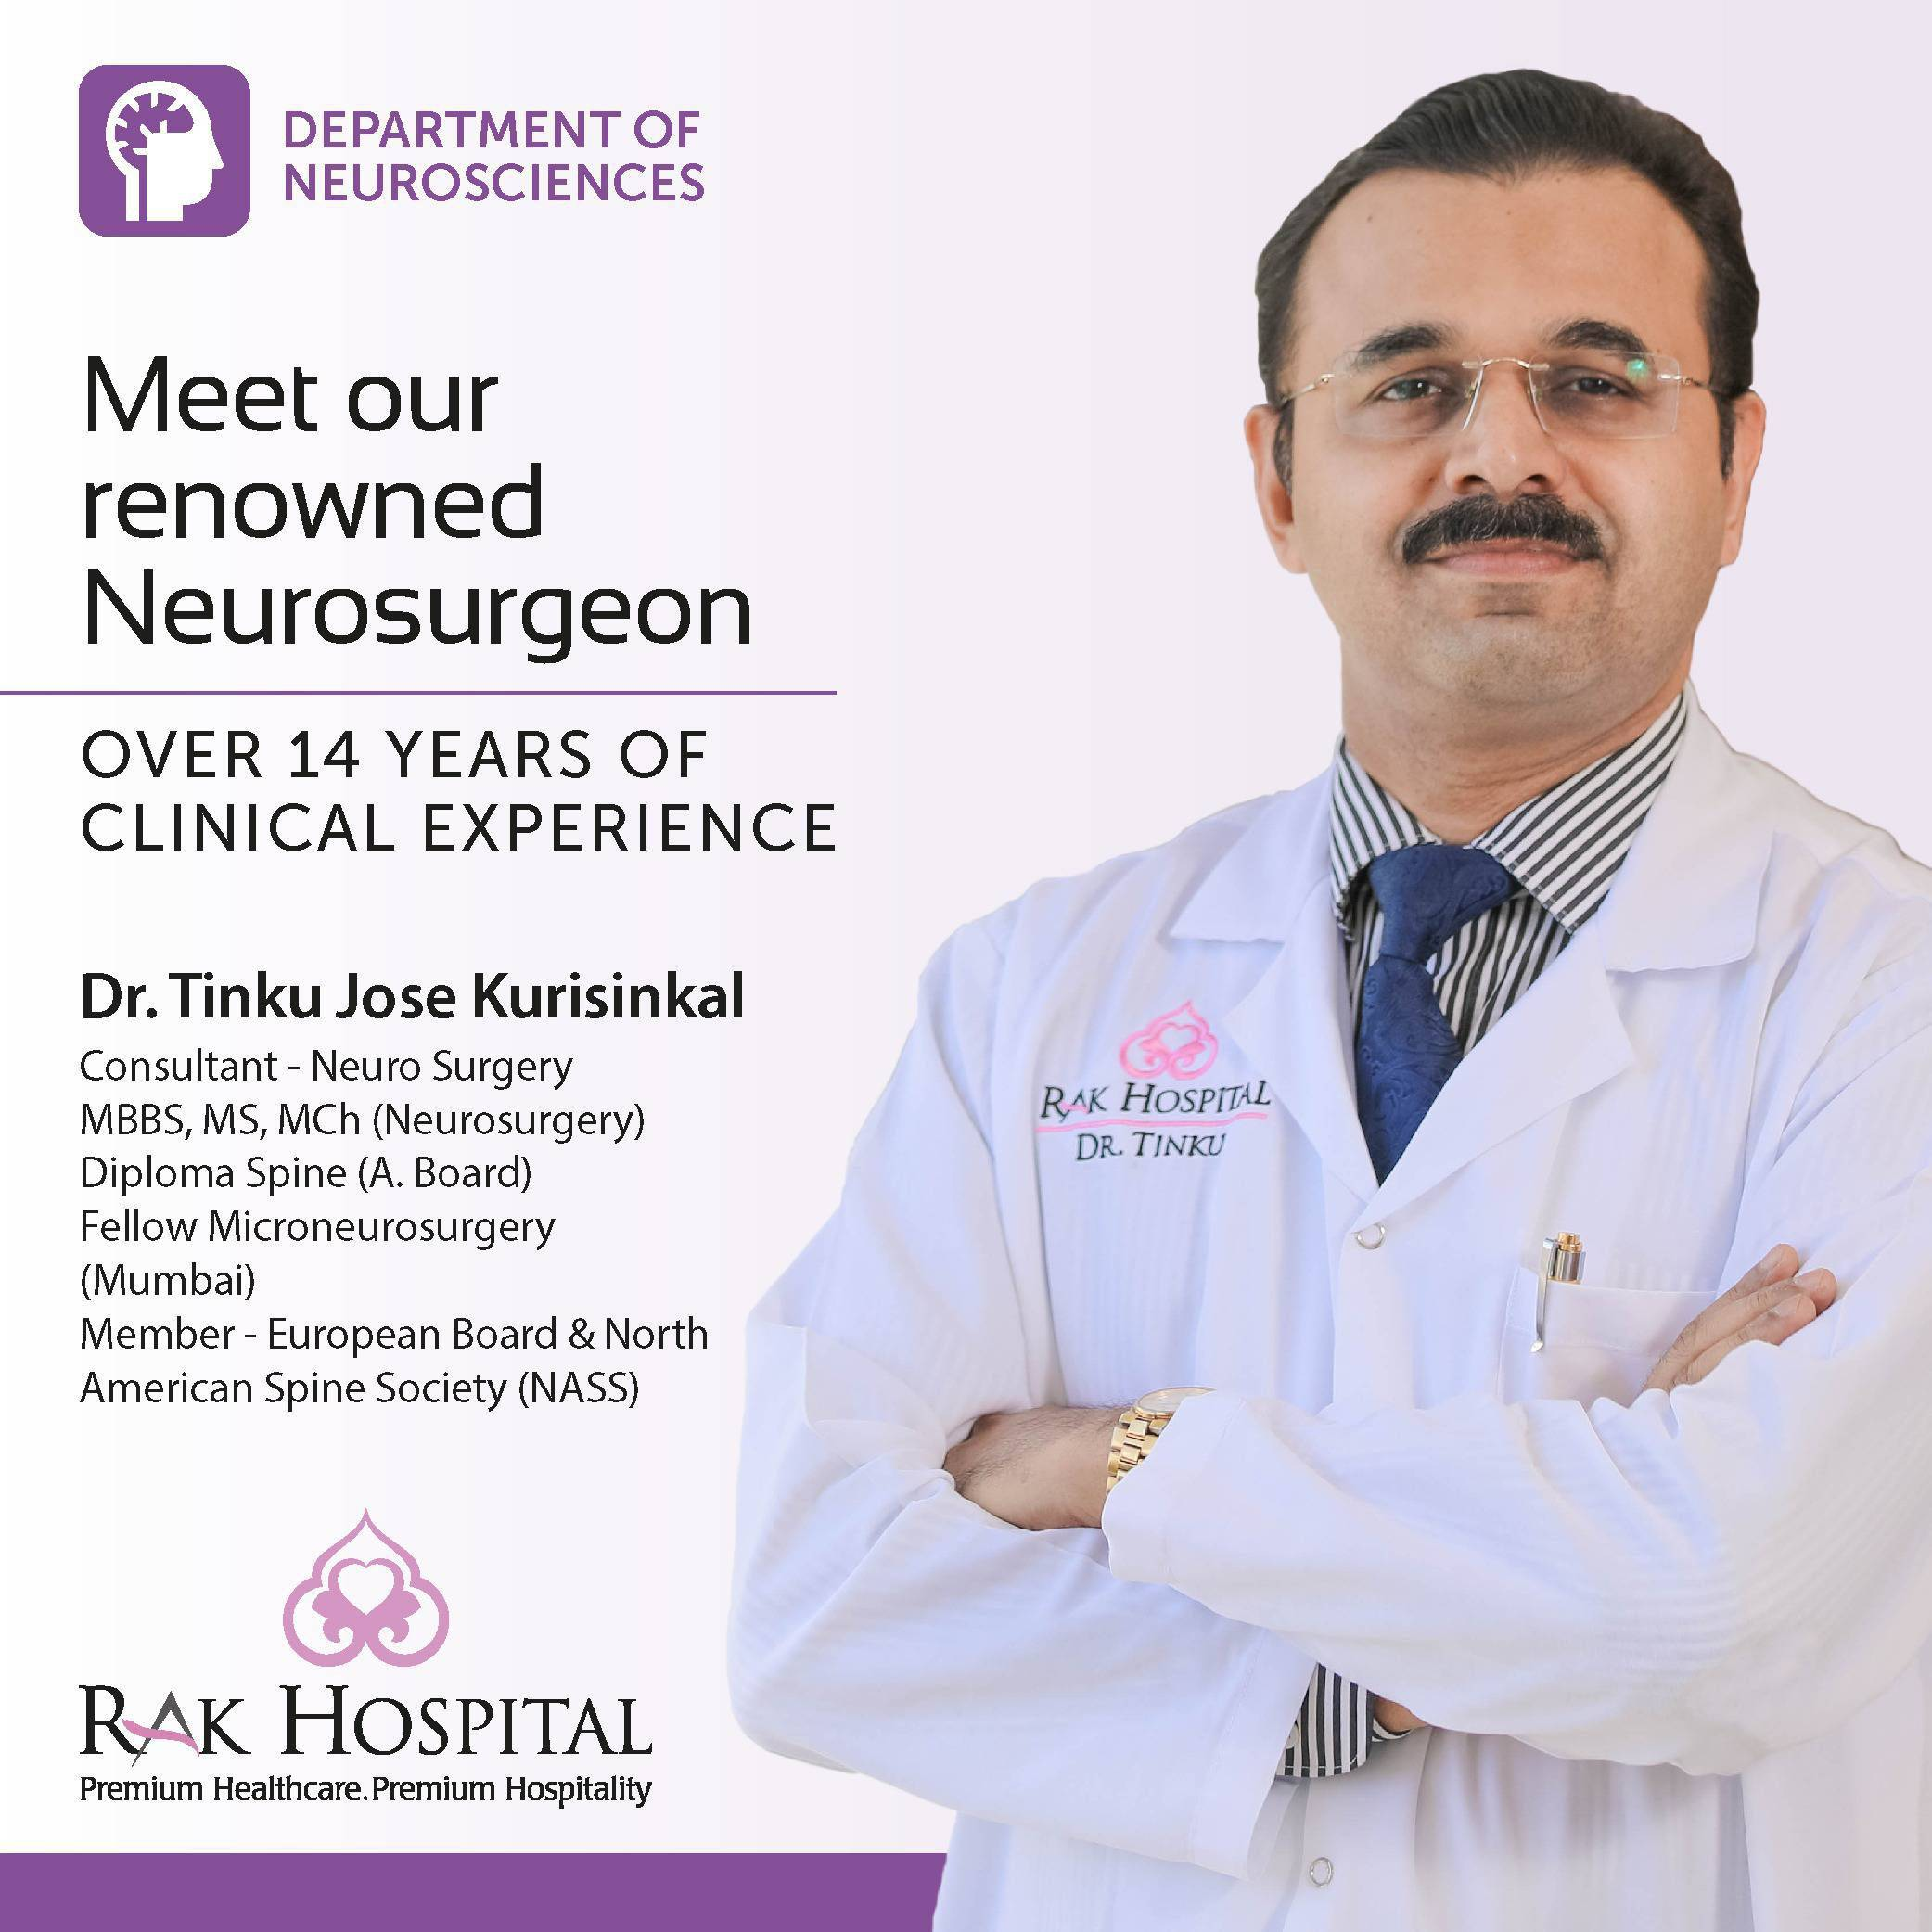 RAK Hospital | The Best Hospital in UAE, Northern Emirates, Dubai